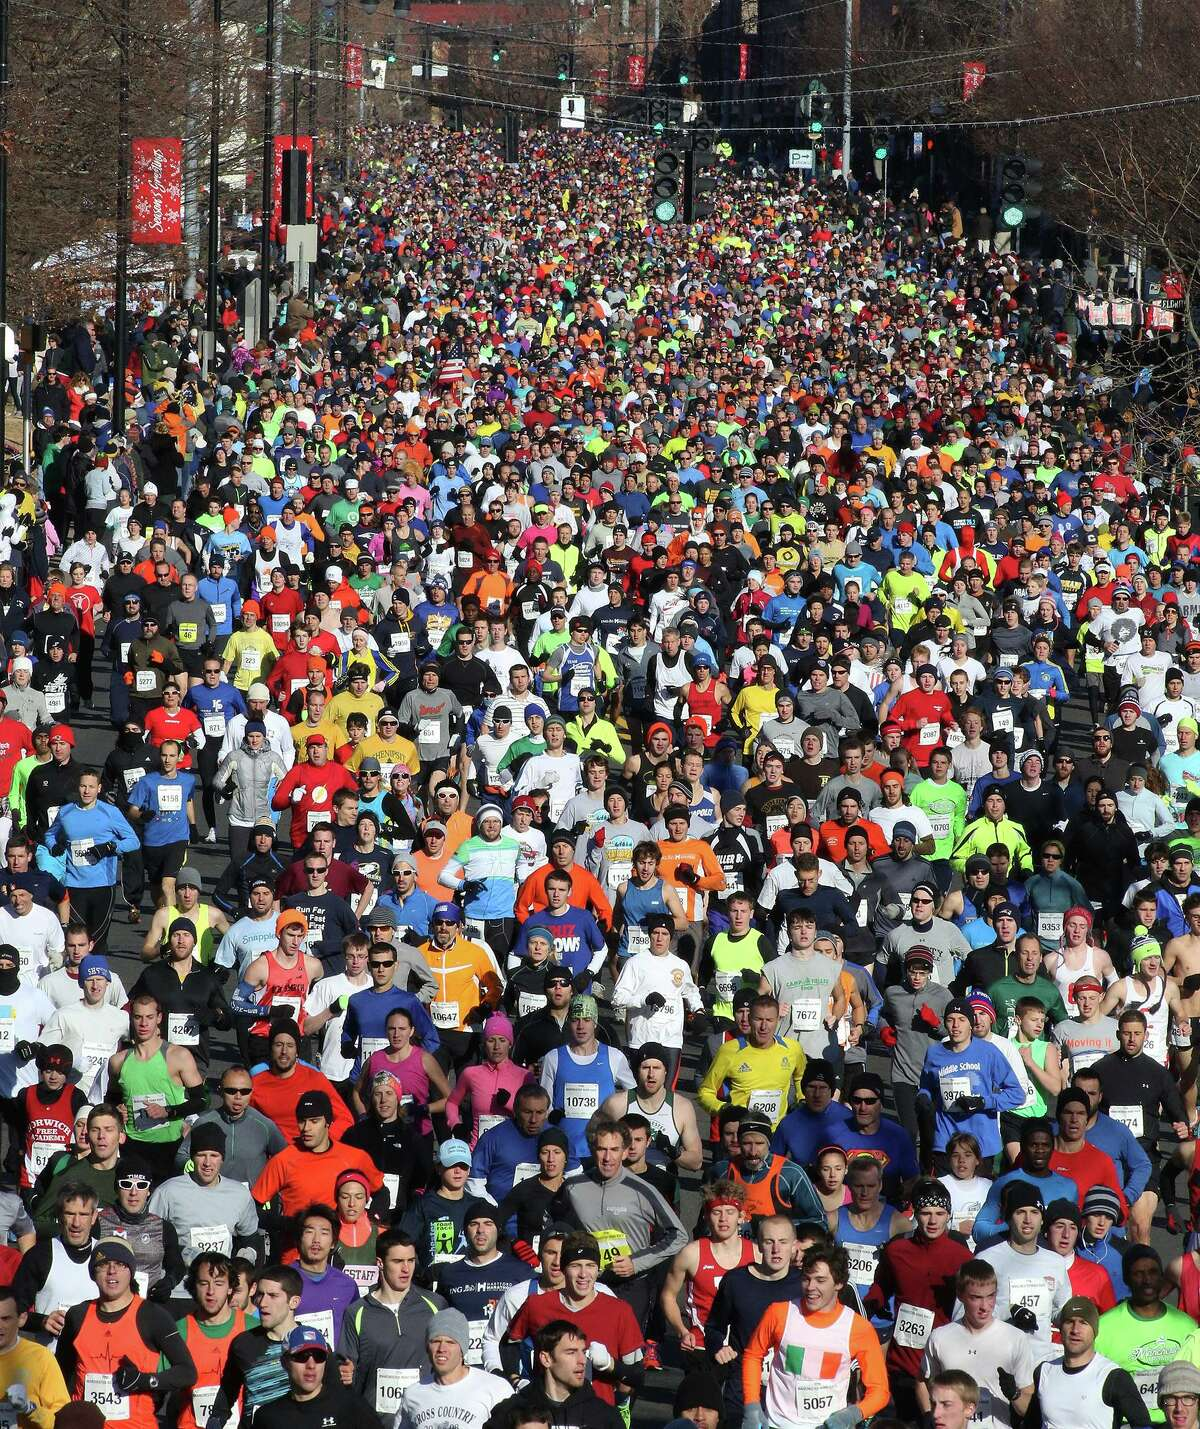 Around 15,000 runners participate in the 77th Annual Manchester Road Race, in Manchester, Conn., on Thursday, Nov. 28, 2013. (AP Photo/Journal Inquirer, Jared Ramsdell) Mandatory Credit